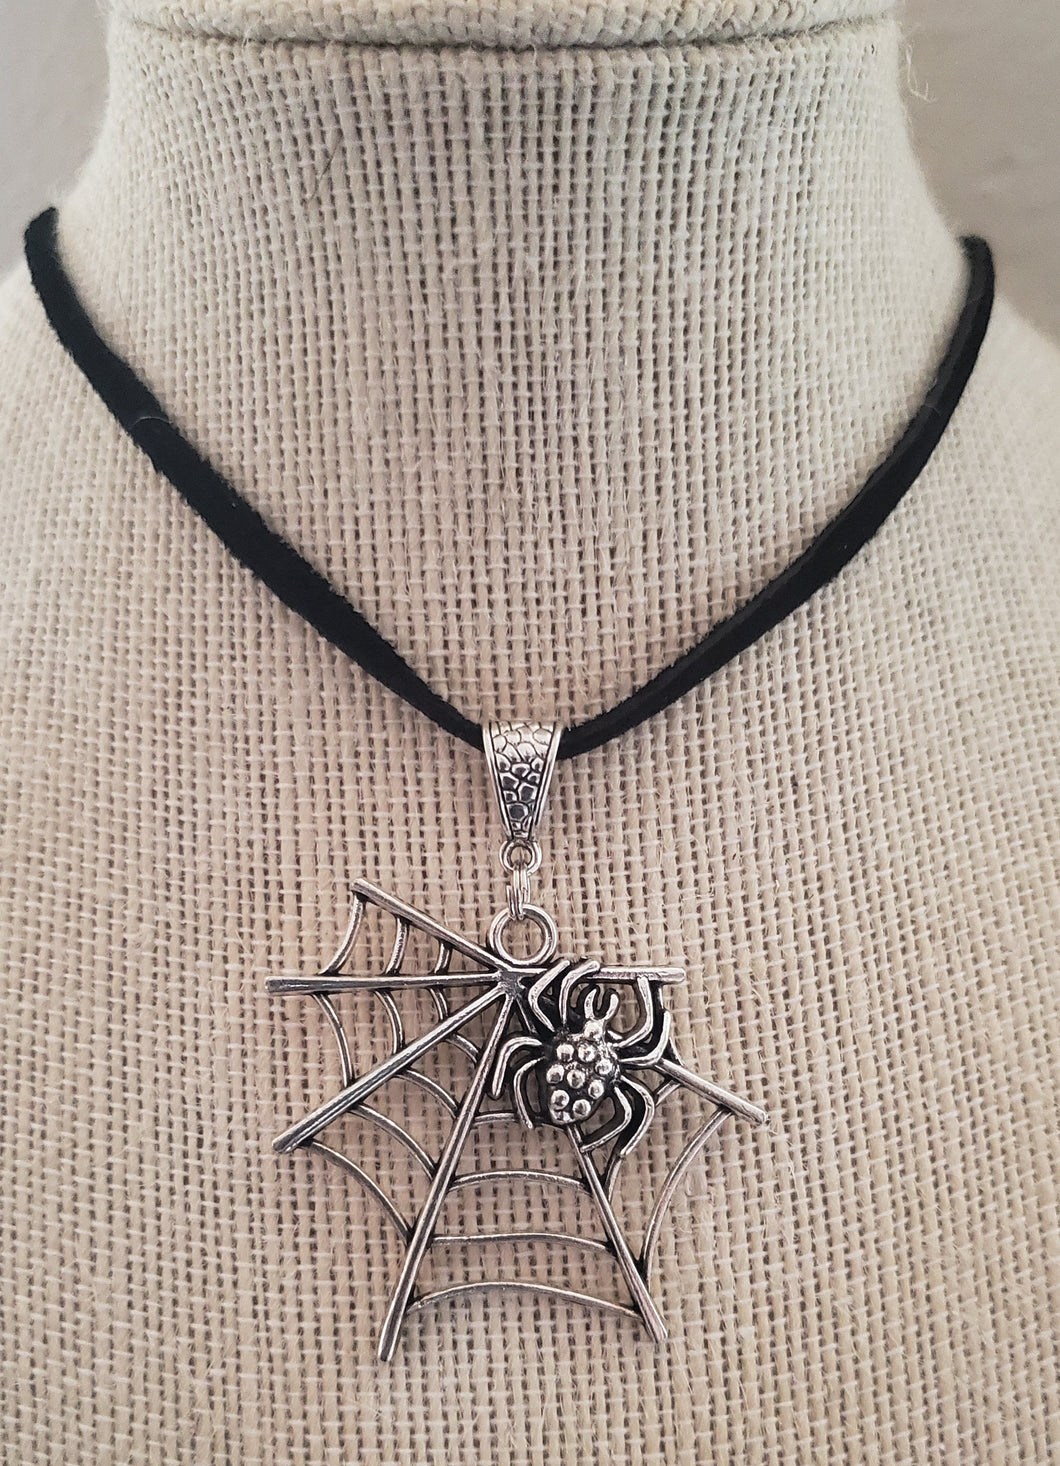 Spider and Web Pendant Suede Leather Necklace